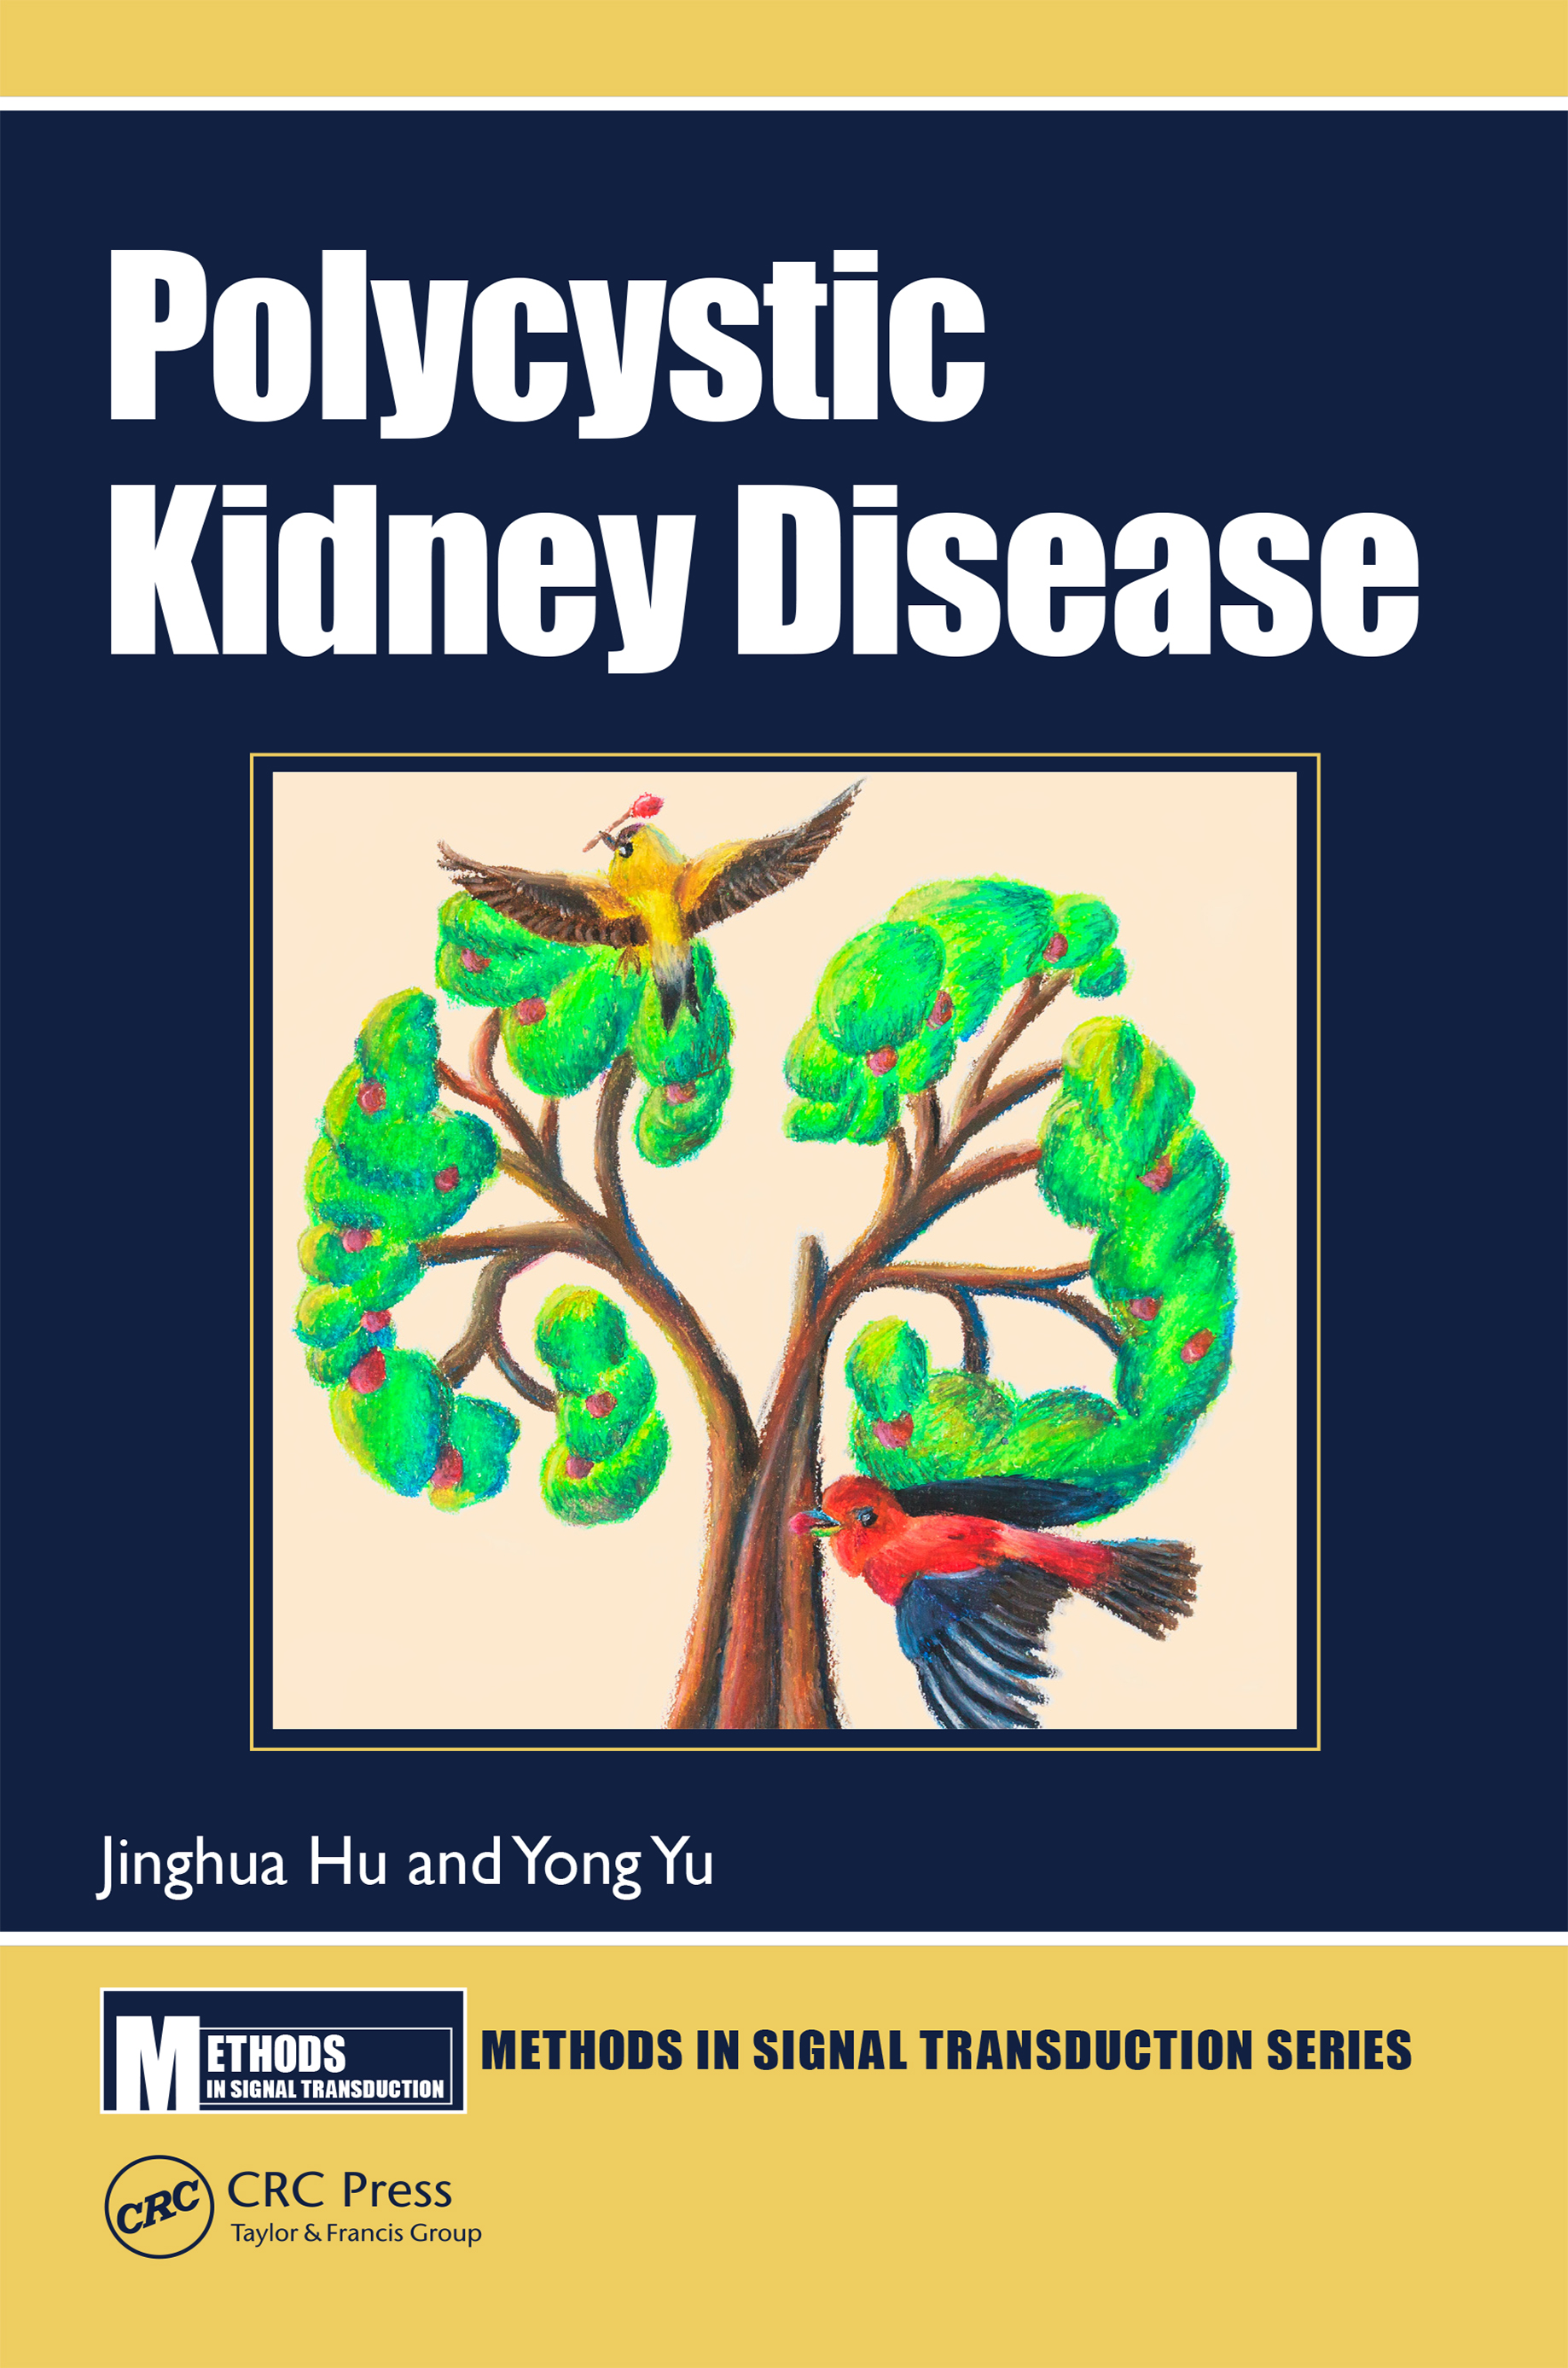 Polycystic Kidney Disease book cover